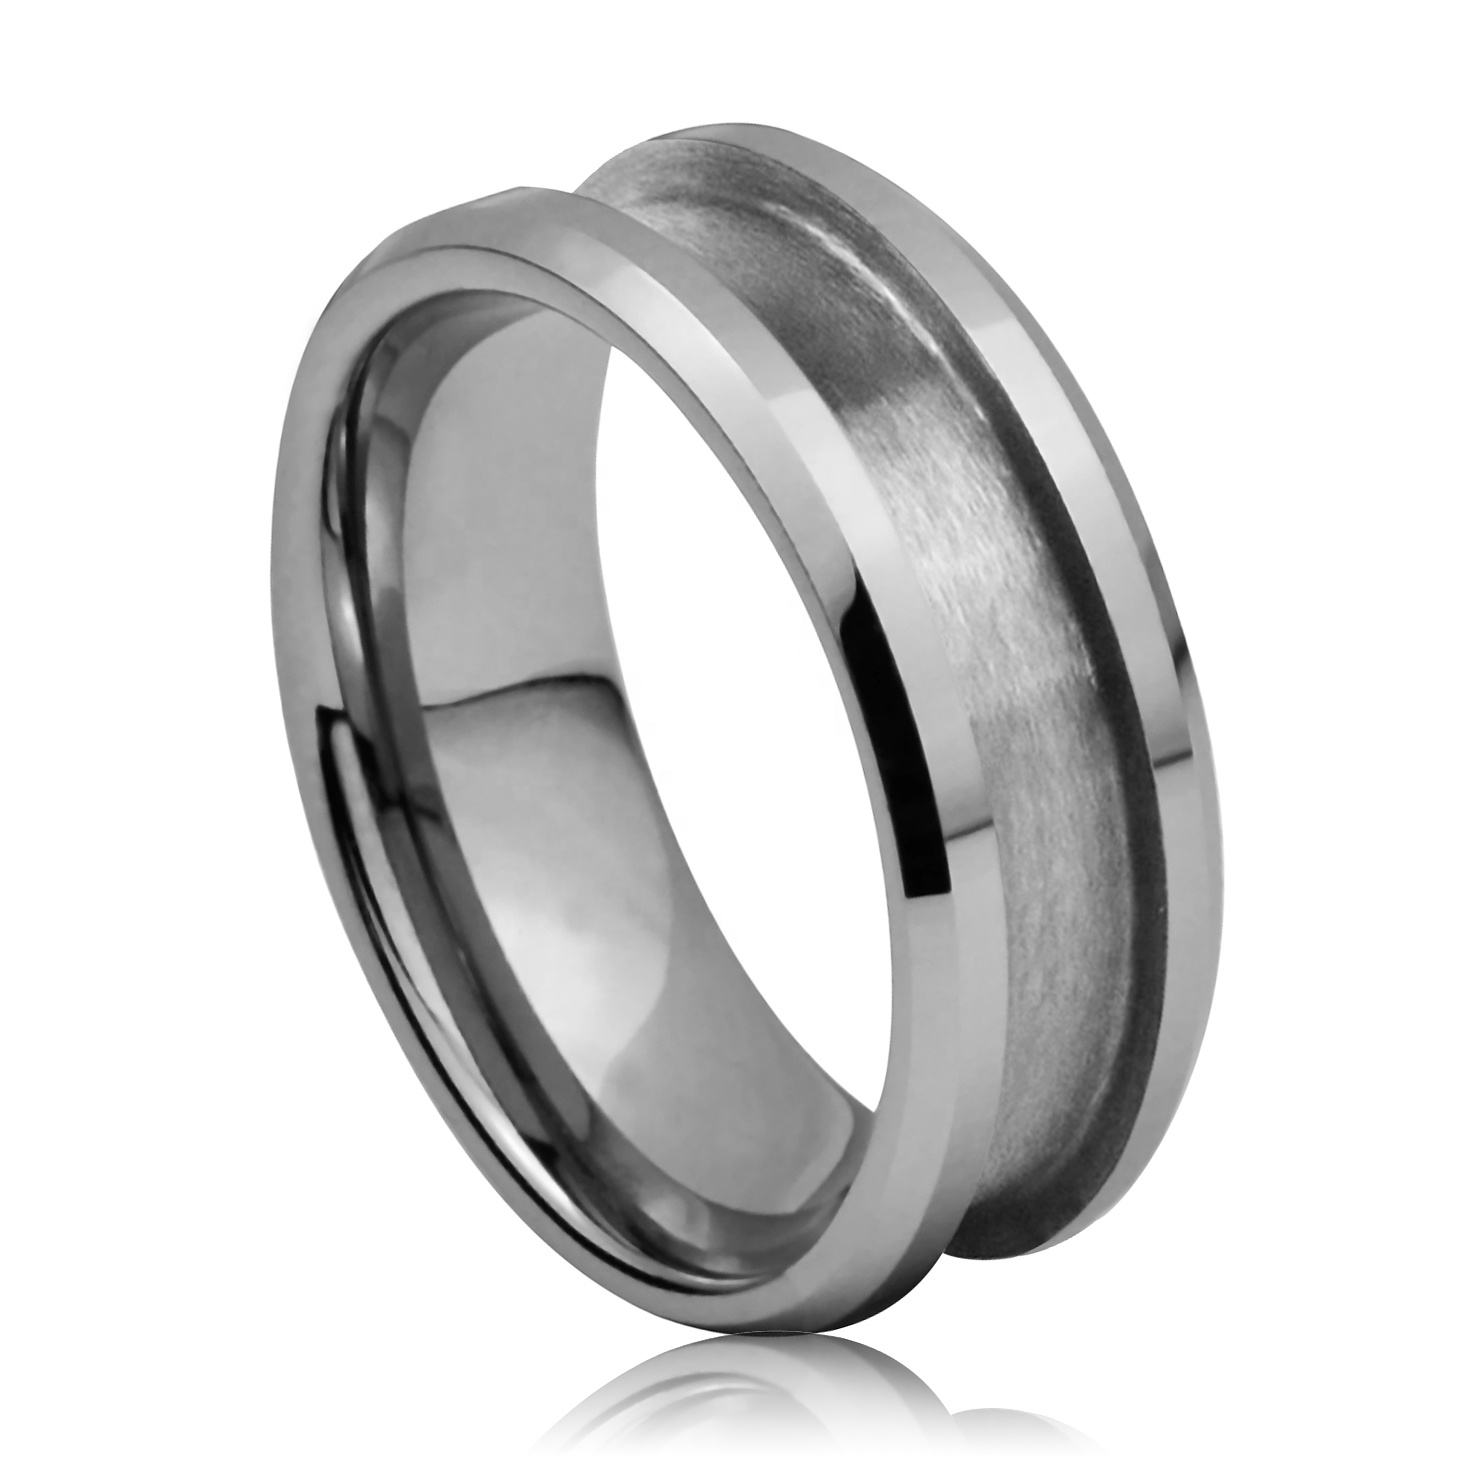 Customized Wholesale Tungsten Carbide Blank Ring for Inlay Jewelry Cores